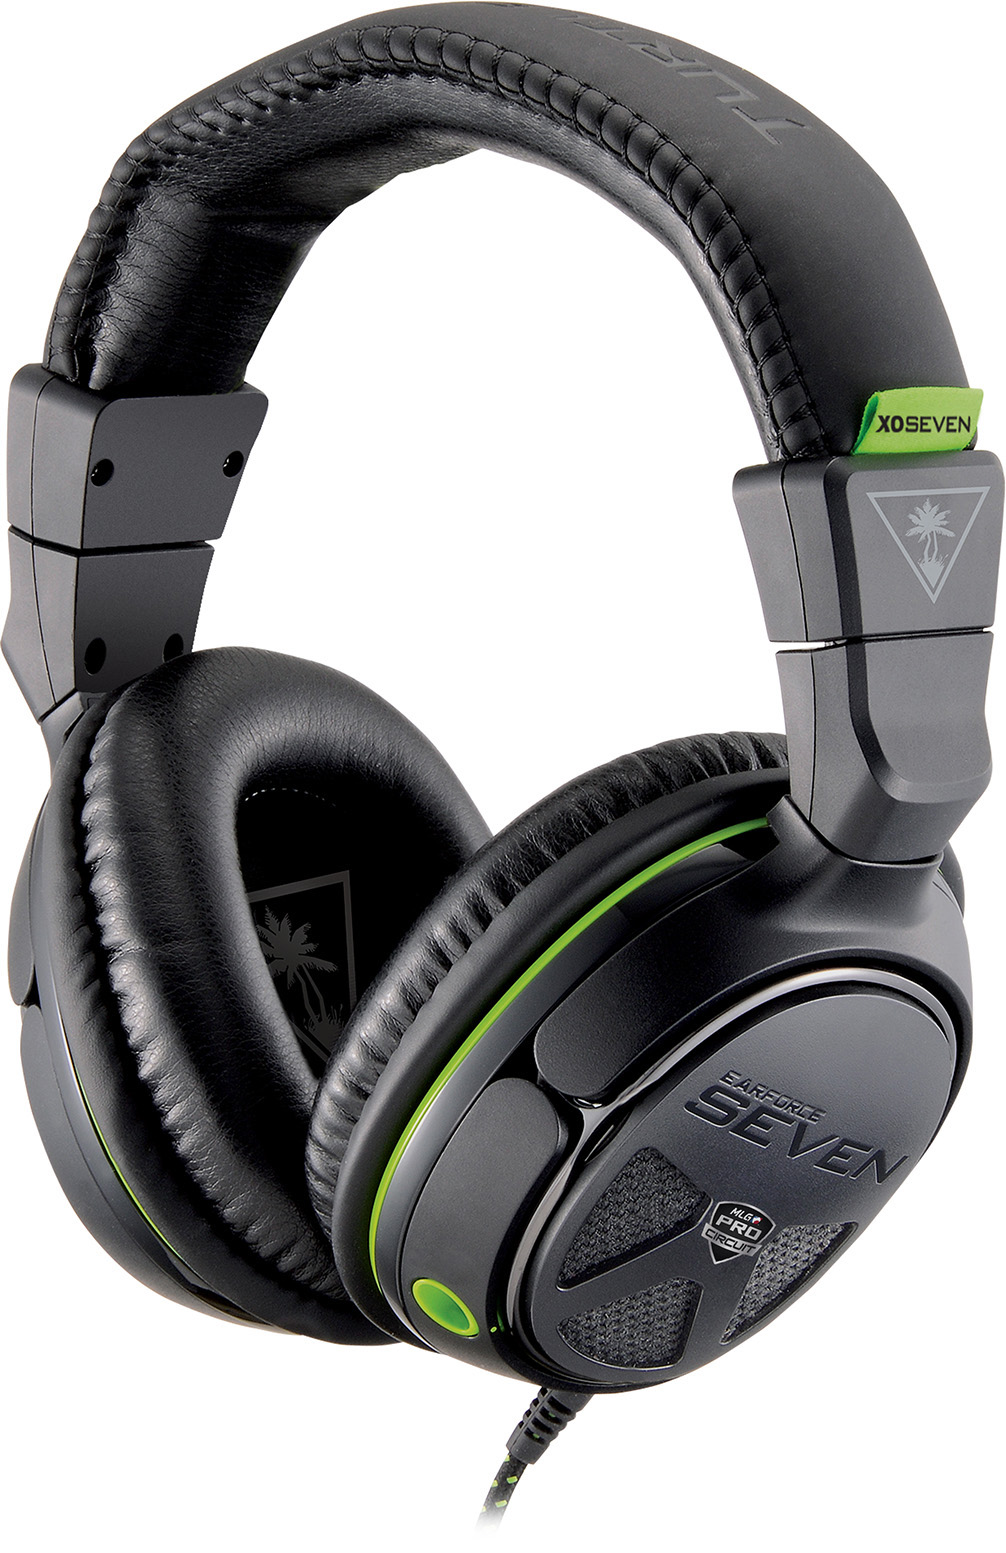 Turtle Beach Ear Force XO SEVEN Pro Xbox One Gaming Headset Deal